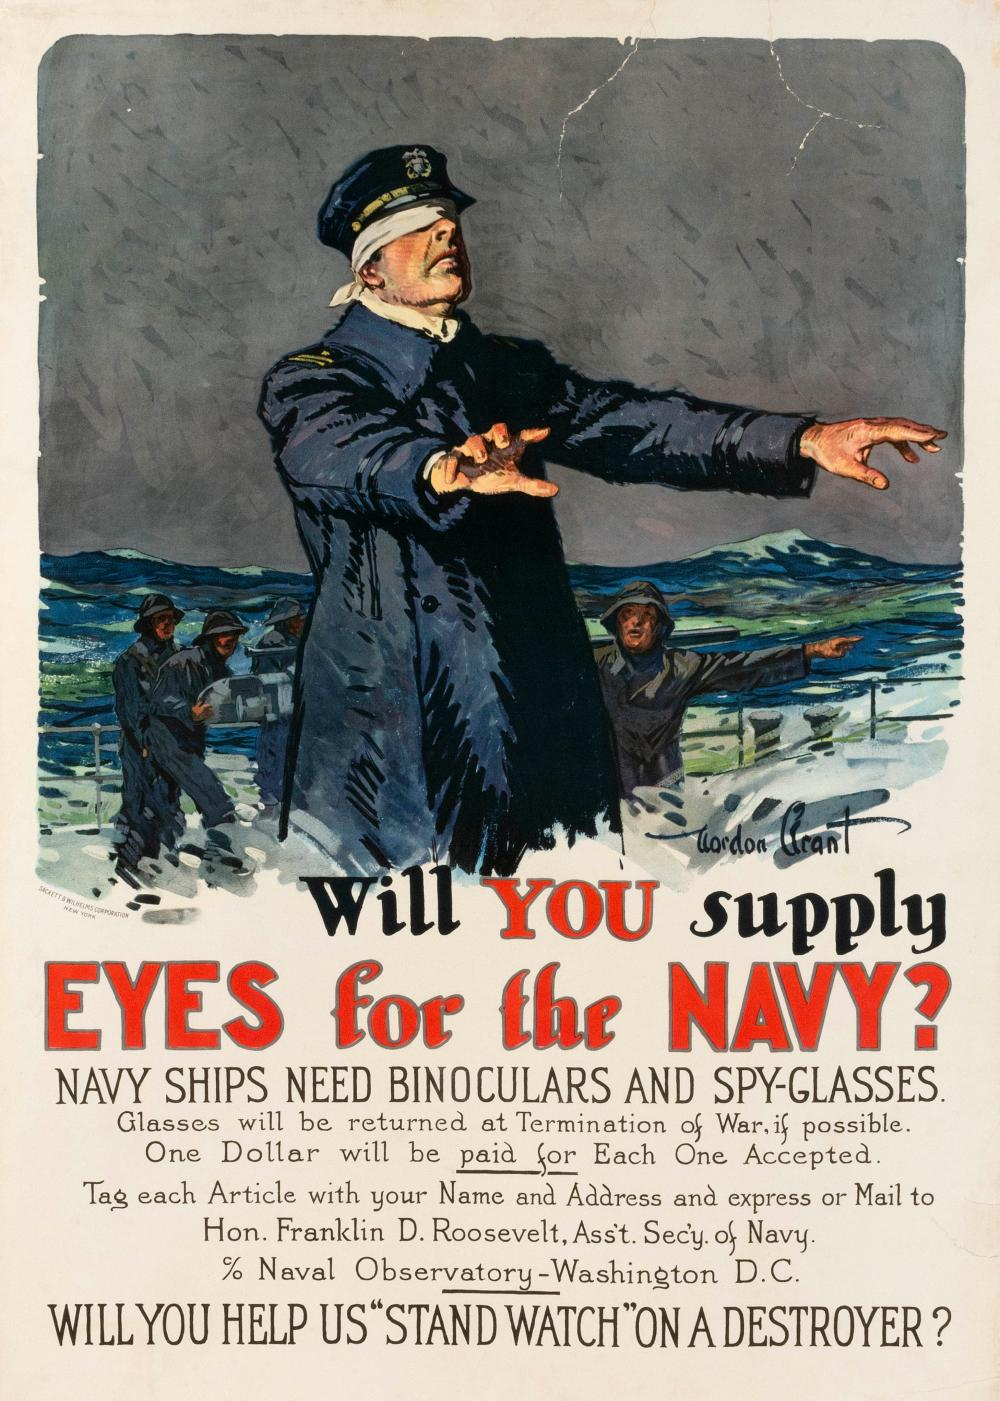 """WILL YOU SUPPLY EYES FOR THE NAVY? ..."" WORLD WAR I POSTER By Gordon Grant, published by Sackett & Wilhelms Corporation, N.Y. Depic..."